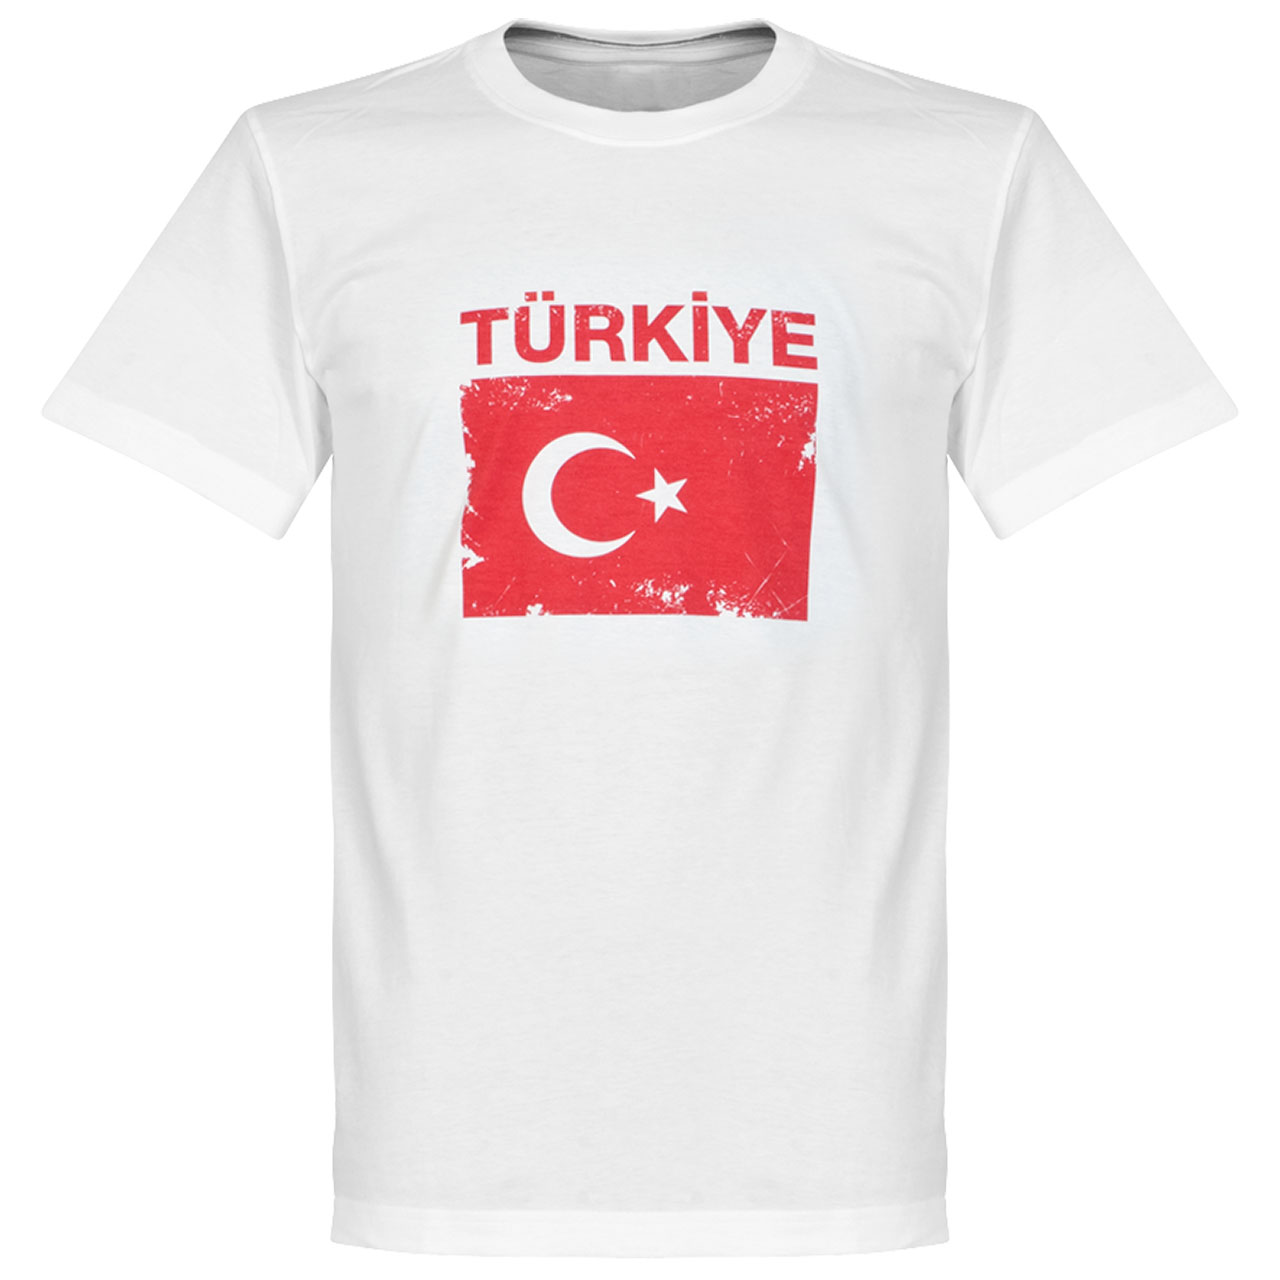 Turkey Flag Tee - White - XXXL